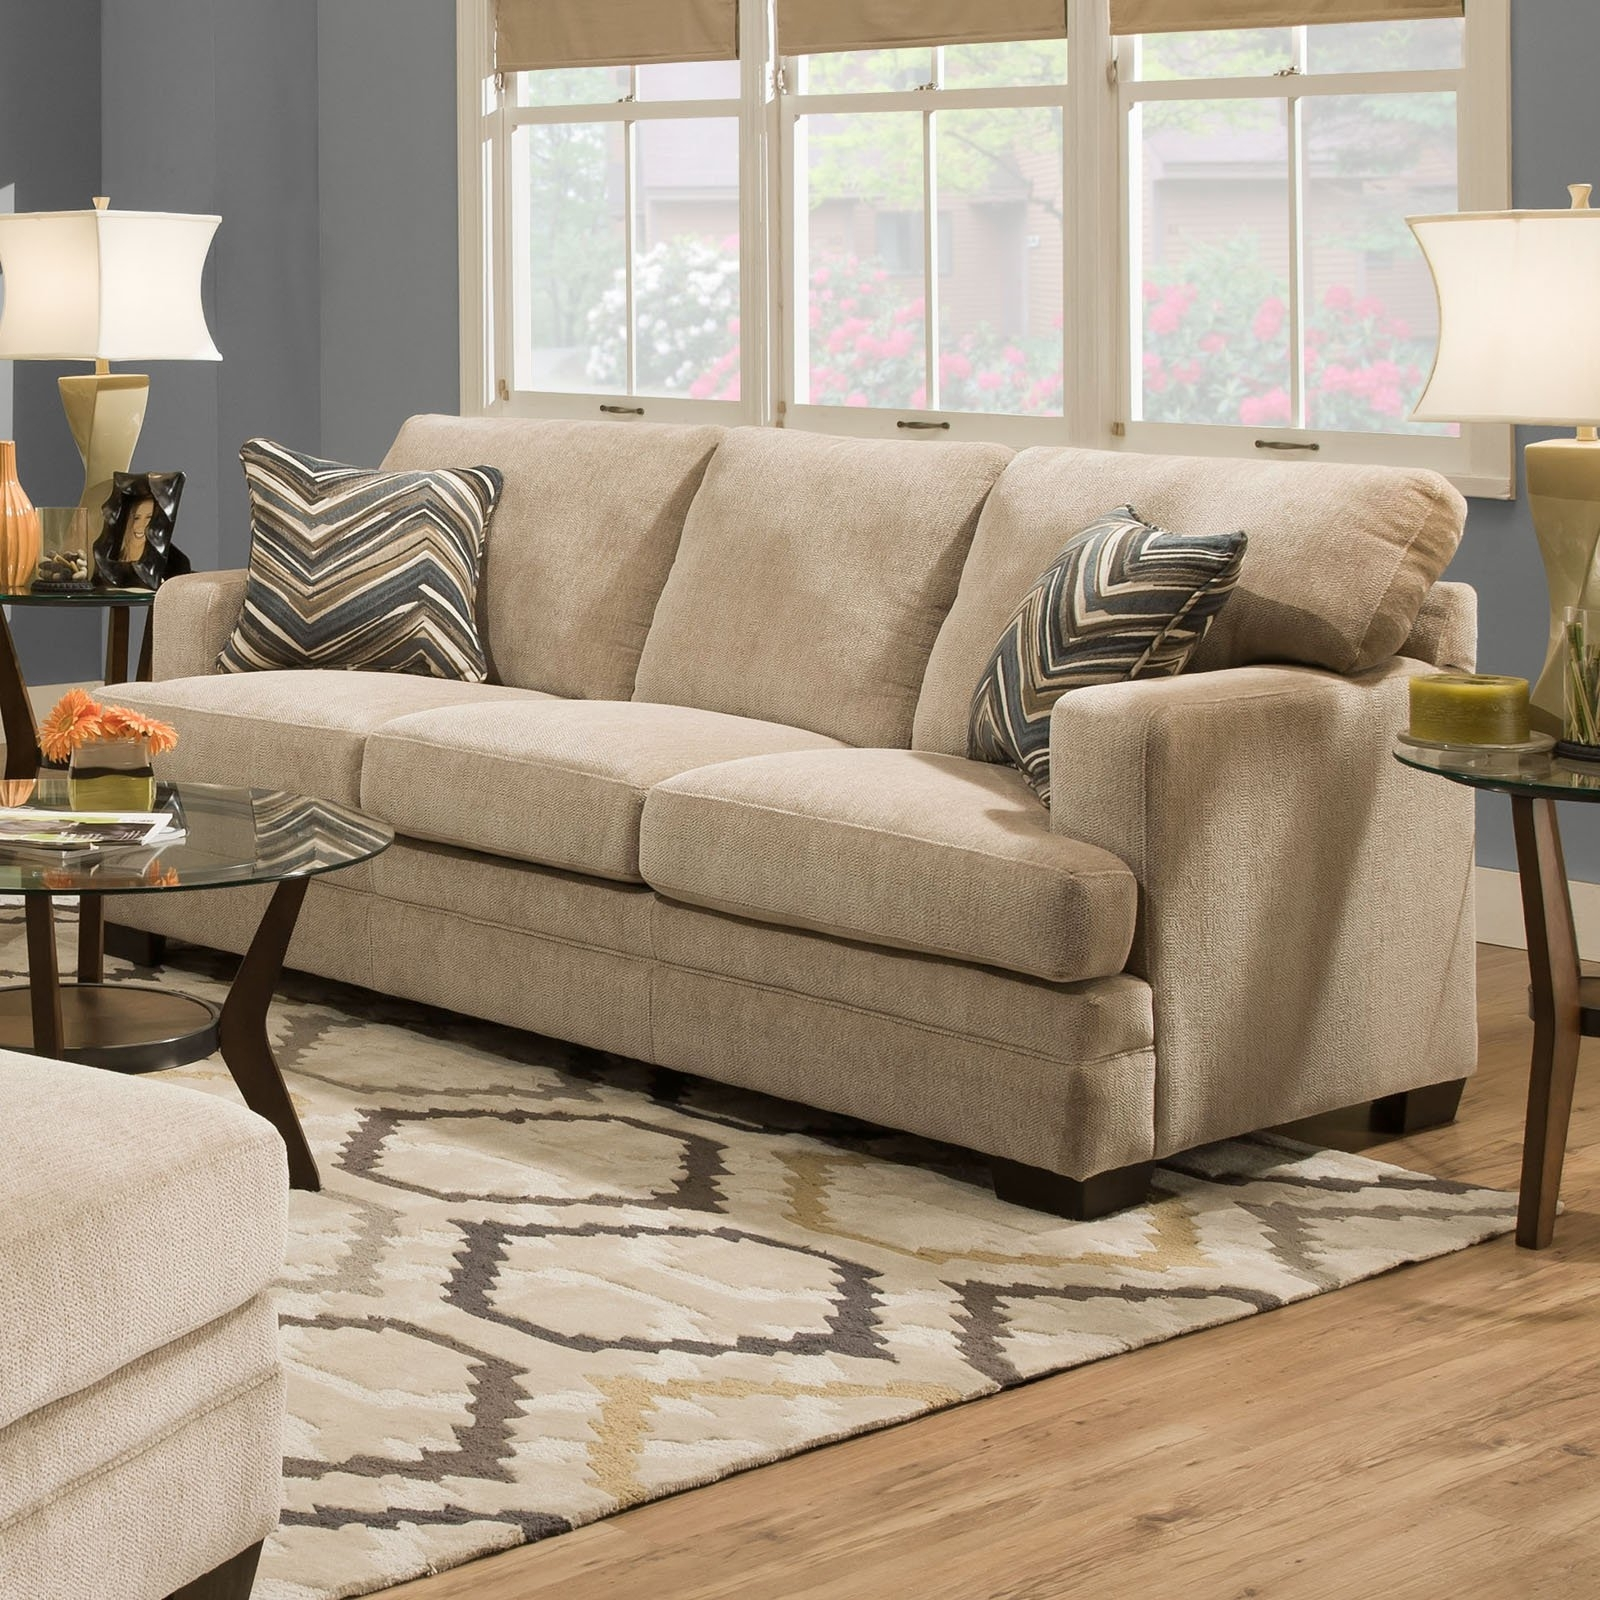 Simmons Upholstery Sassy Sofa – Barley – Walmart With Regard To 2019 Simmons Chaise Sofas (View 15 of 20)